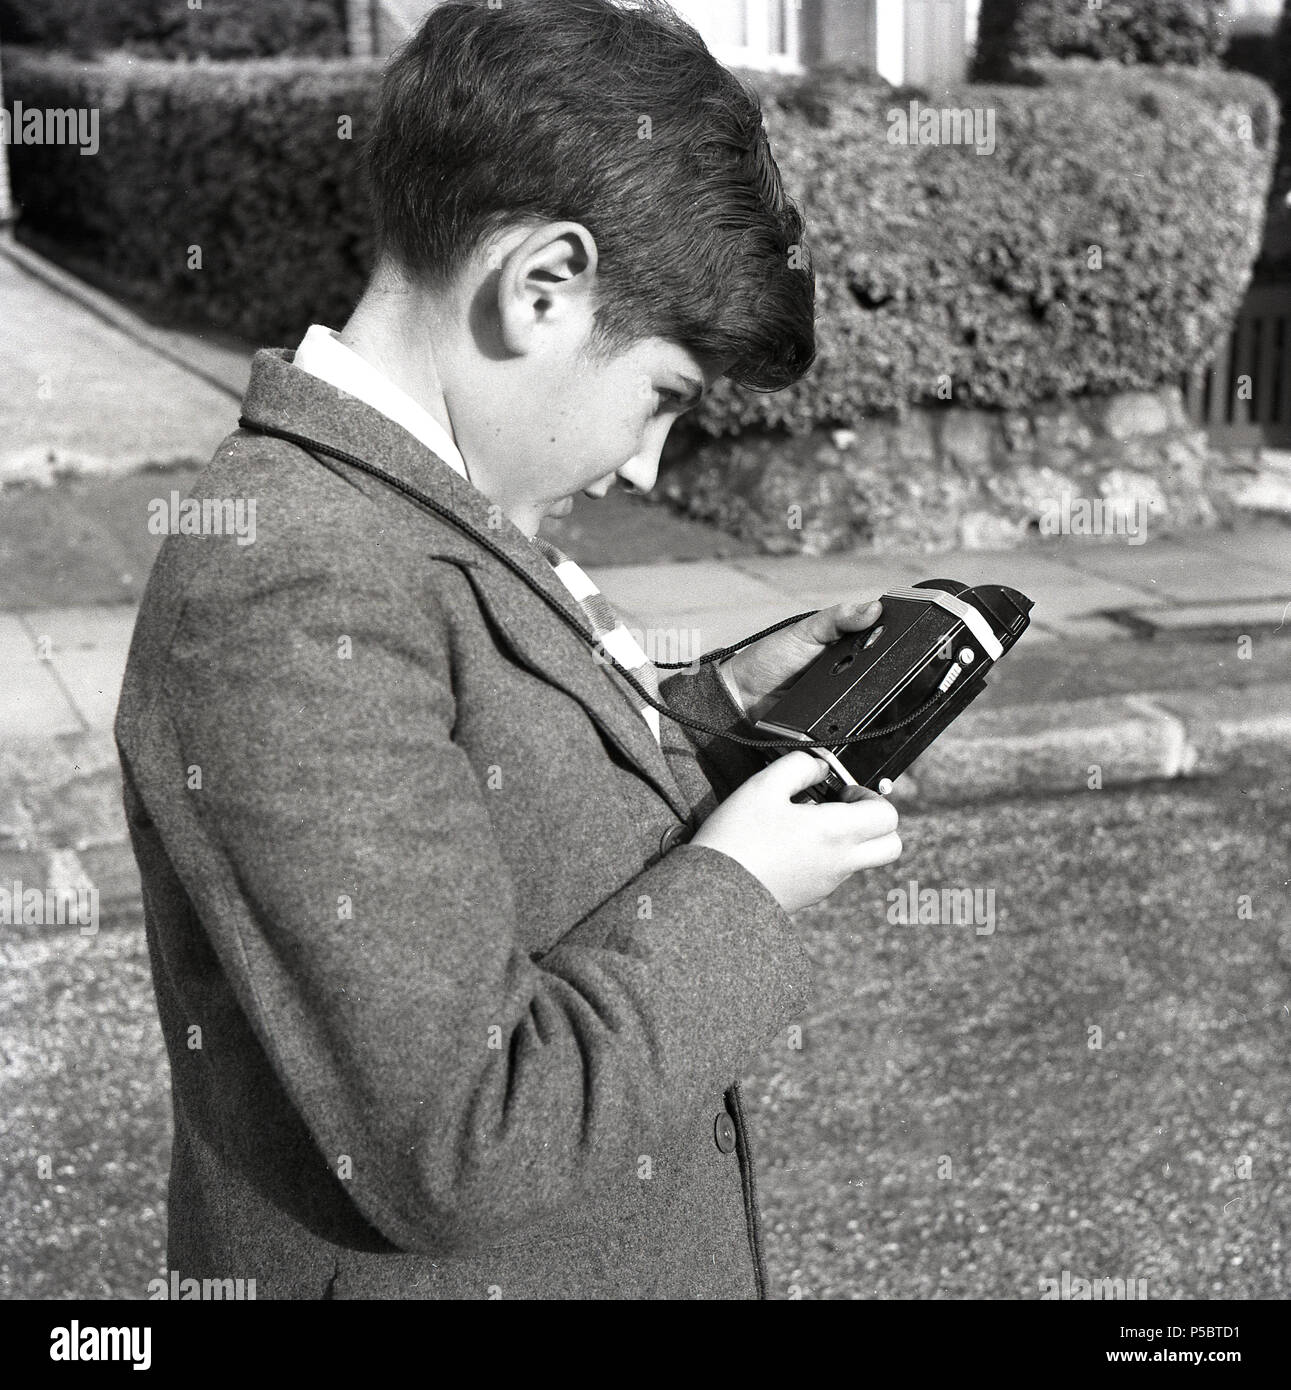 1950s, historical, young schoolboy outside checking the back of his Kodak Brownie camera to see how many photos he has left on the roll of film. - Stock Image